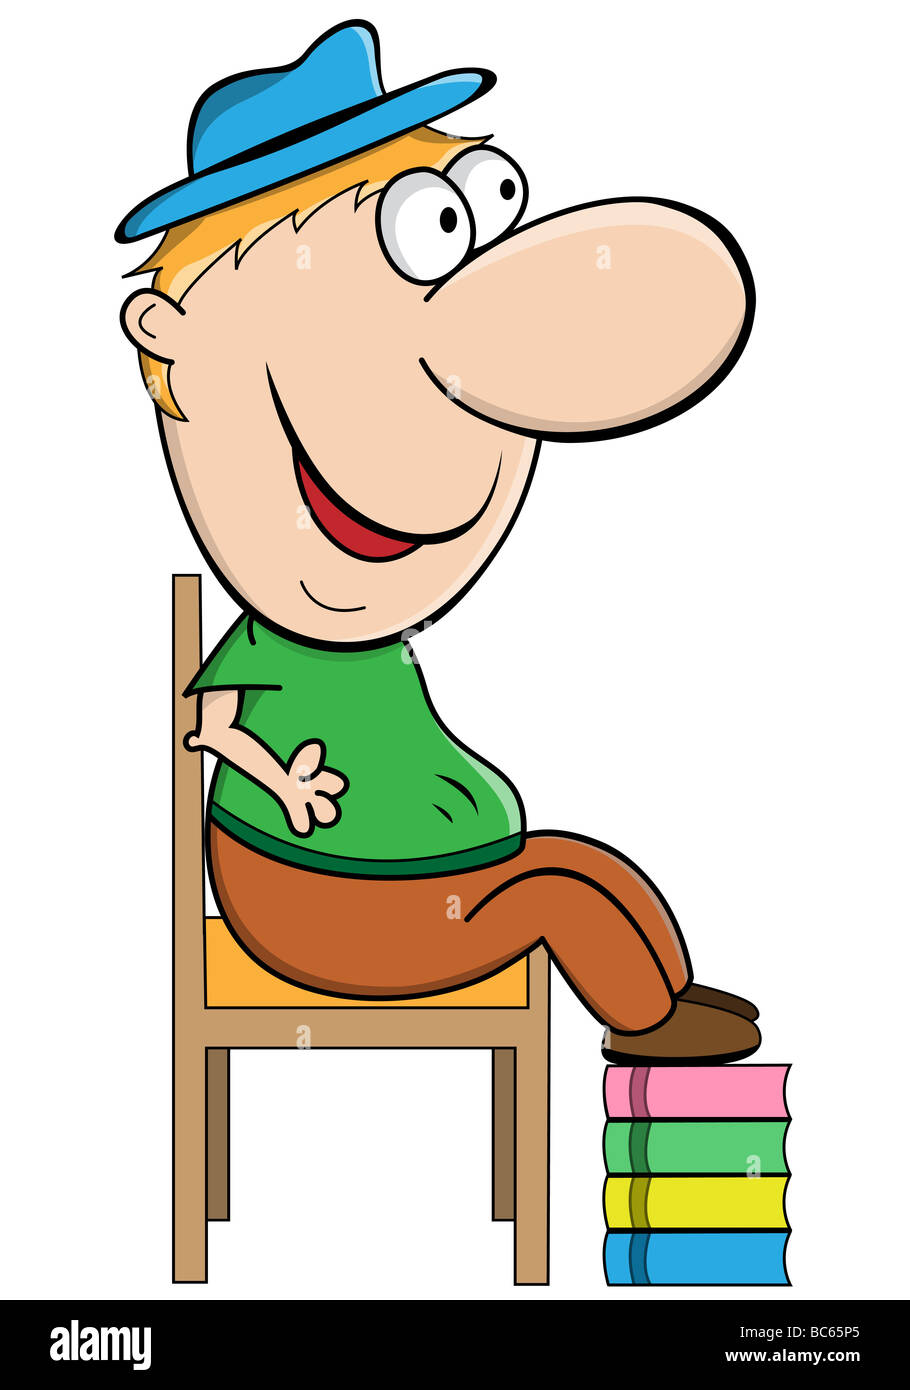 funny cartoon character with big head and short body stock photo